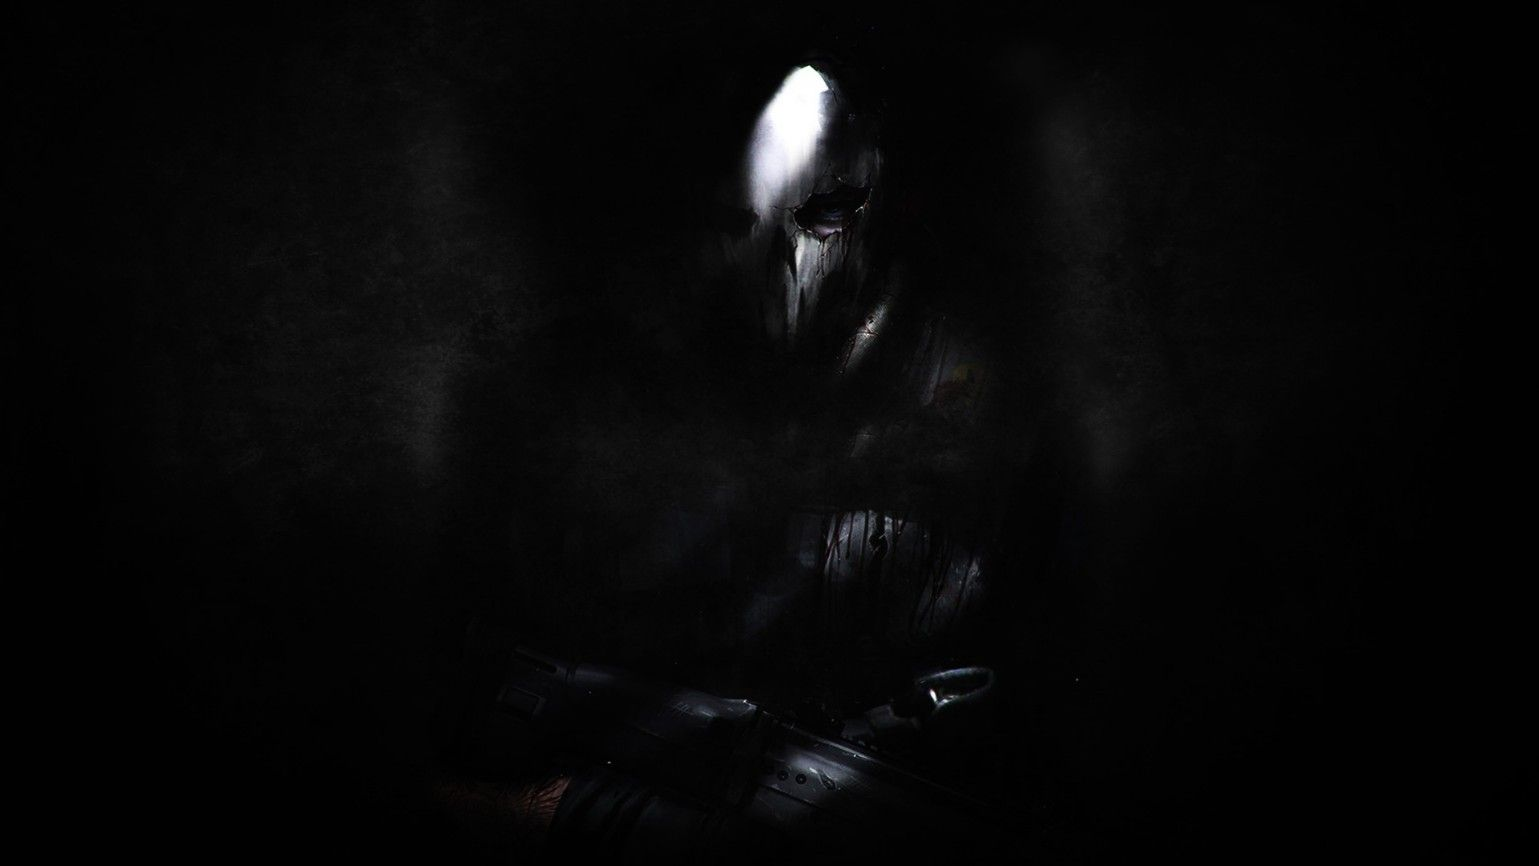 Pin By Tim Moore On Call Of Duty Call Of Duty Ghosts Ghost Pictures Ghost Images